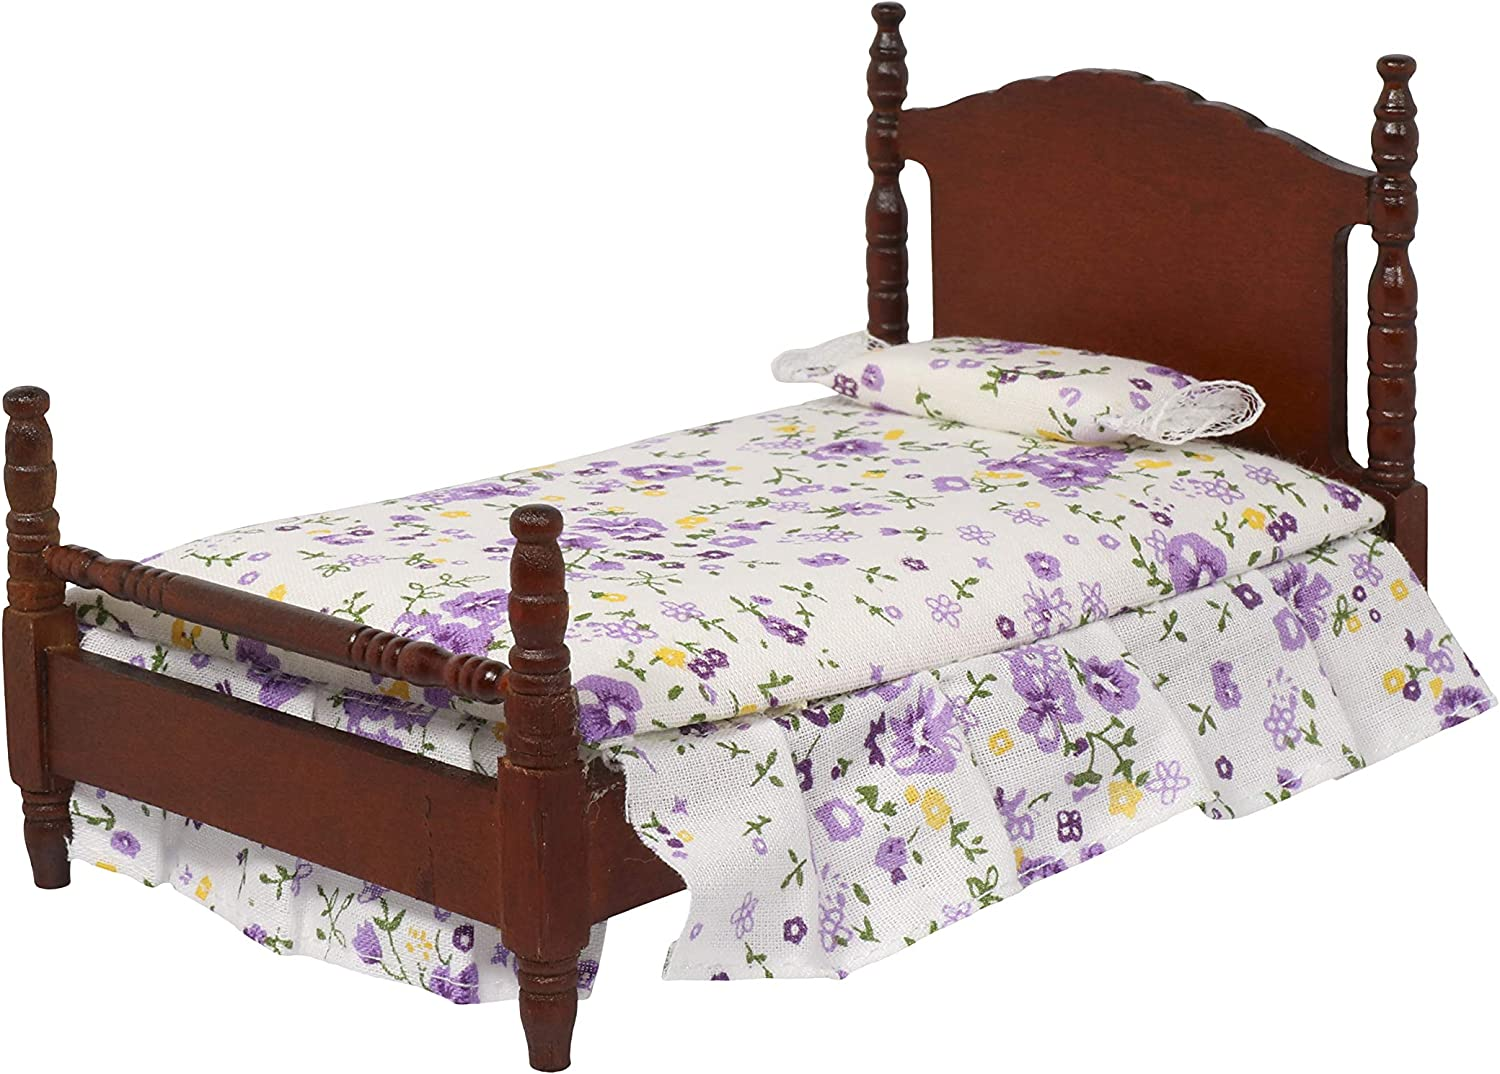 Inusitus Wooden Dollhouse Queen Bed | with Mattress & Pillow | 1/12 Scale | Dolls House Accessories & Toys (Dark)